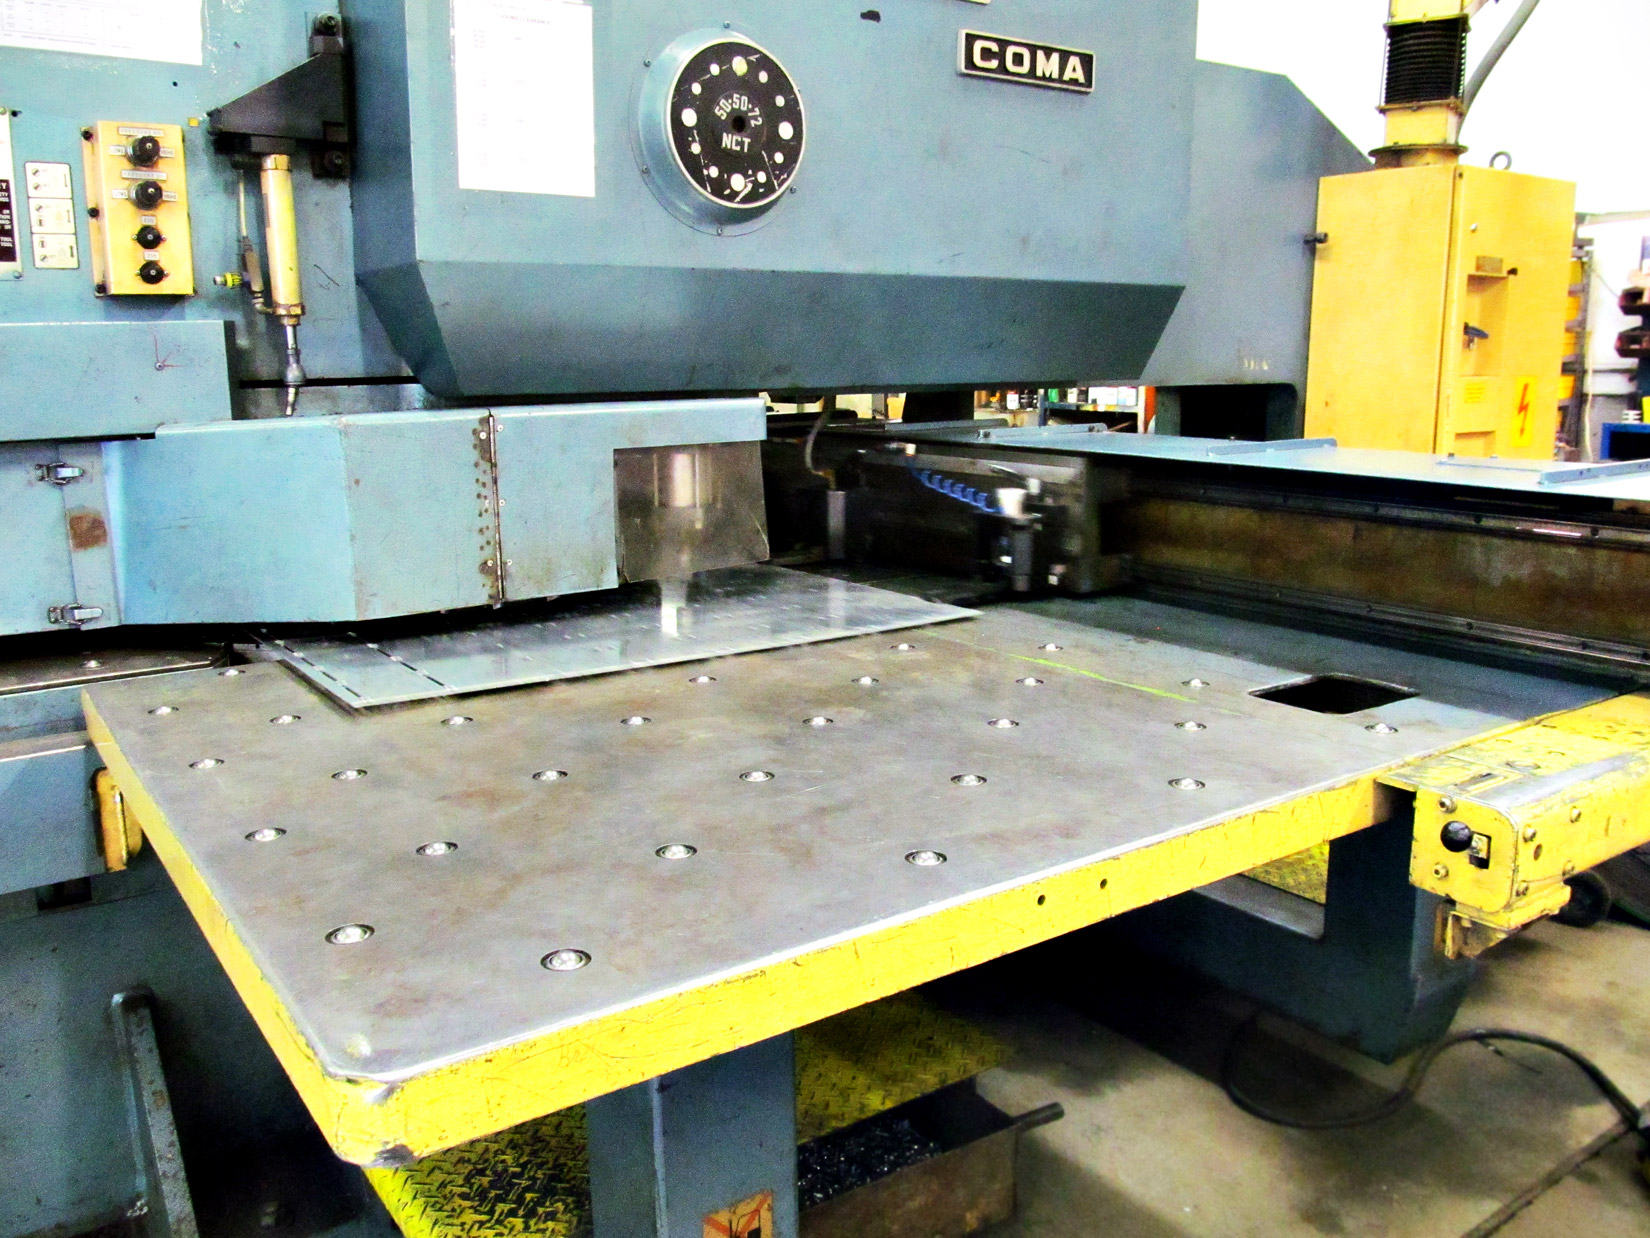 This is our turret punch press, punching through metal for custom parts creation at our sheet metal fab shop in Fremont Michigan.